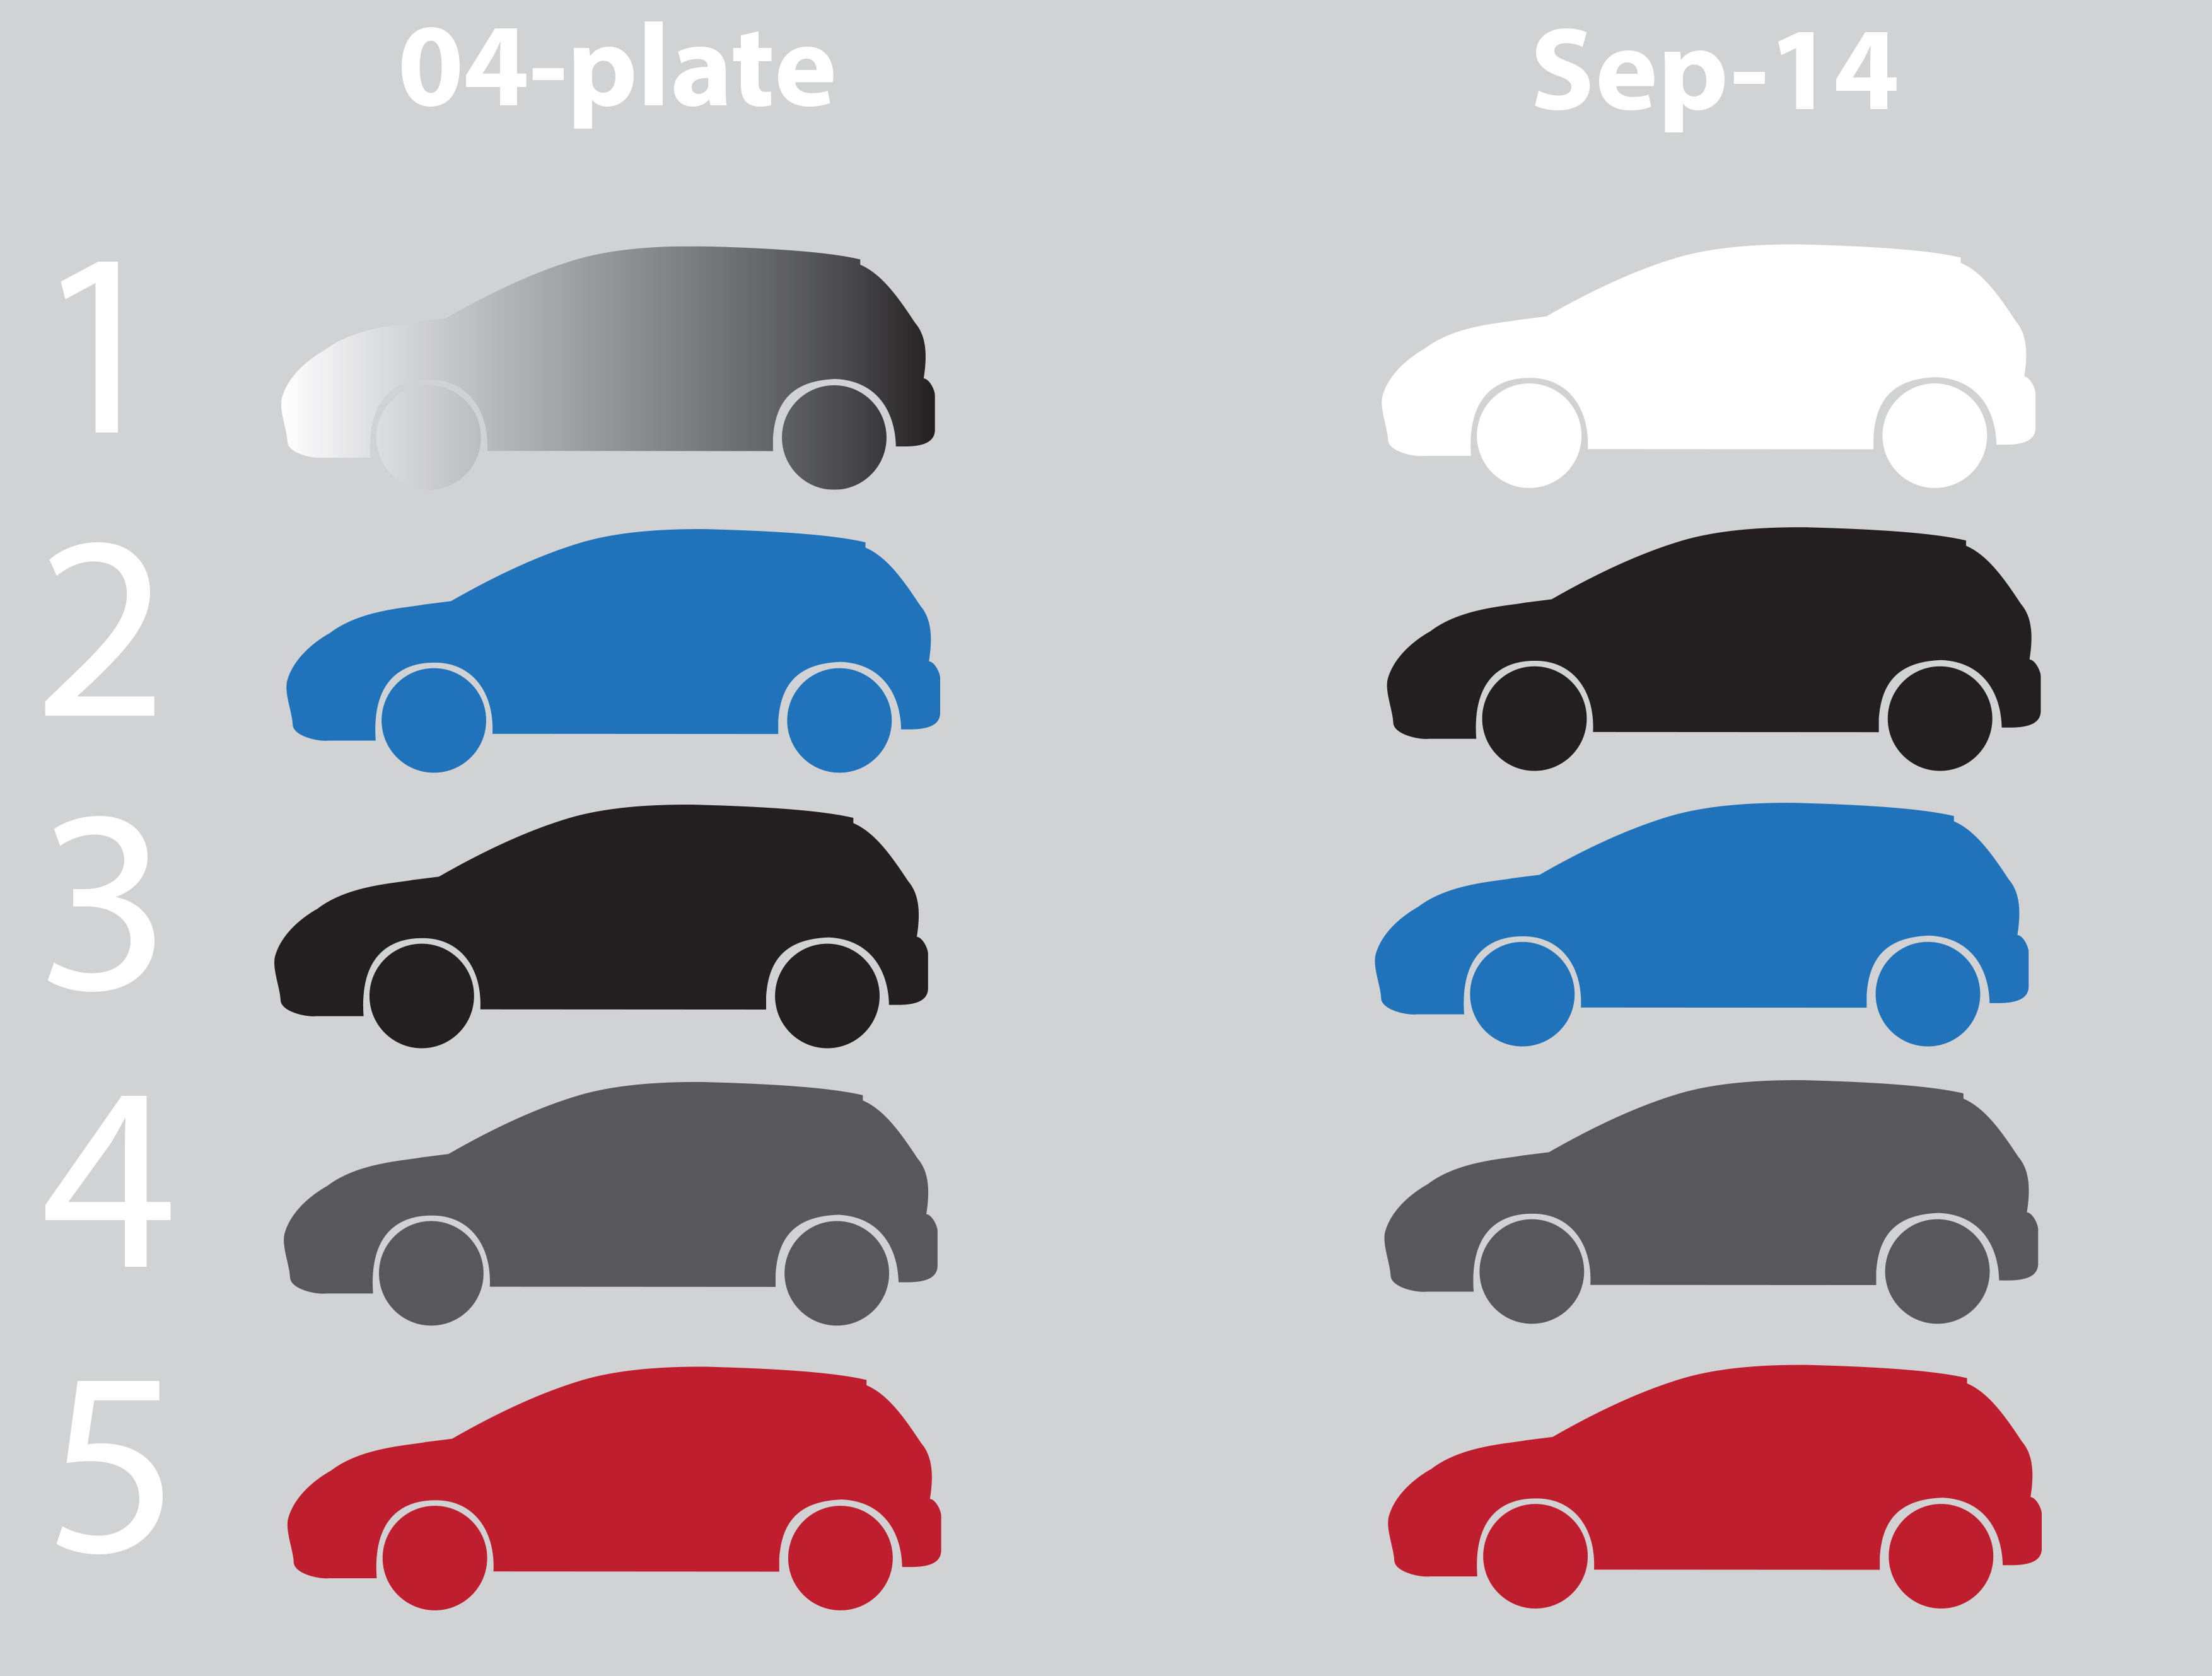 Top 5 colours 04-plate vs. 2014